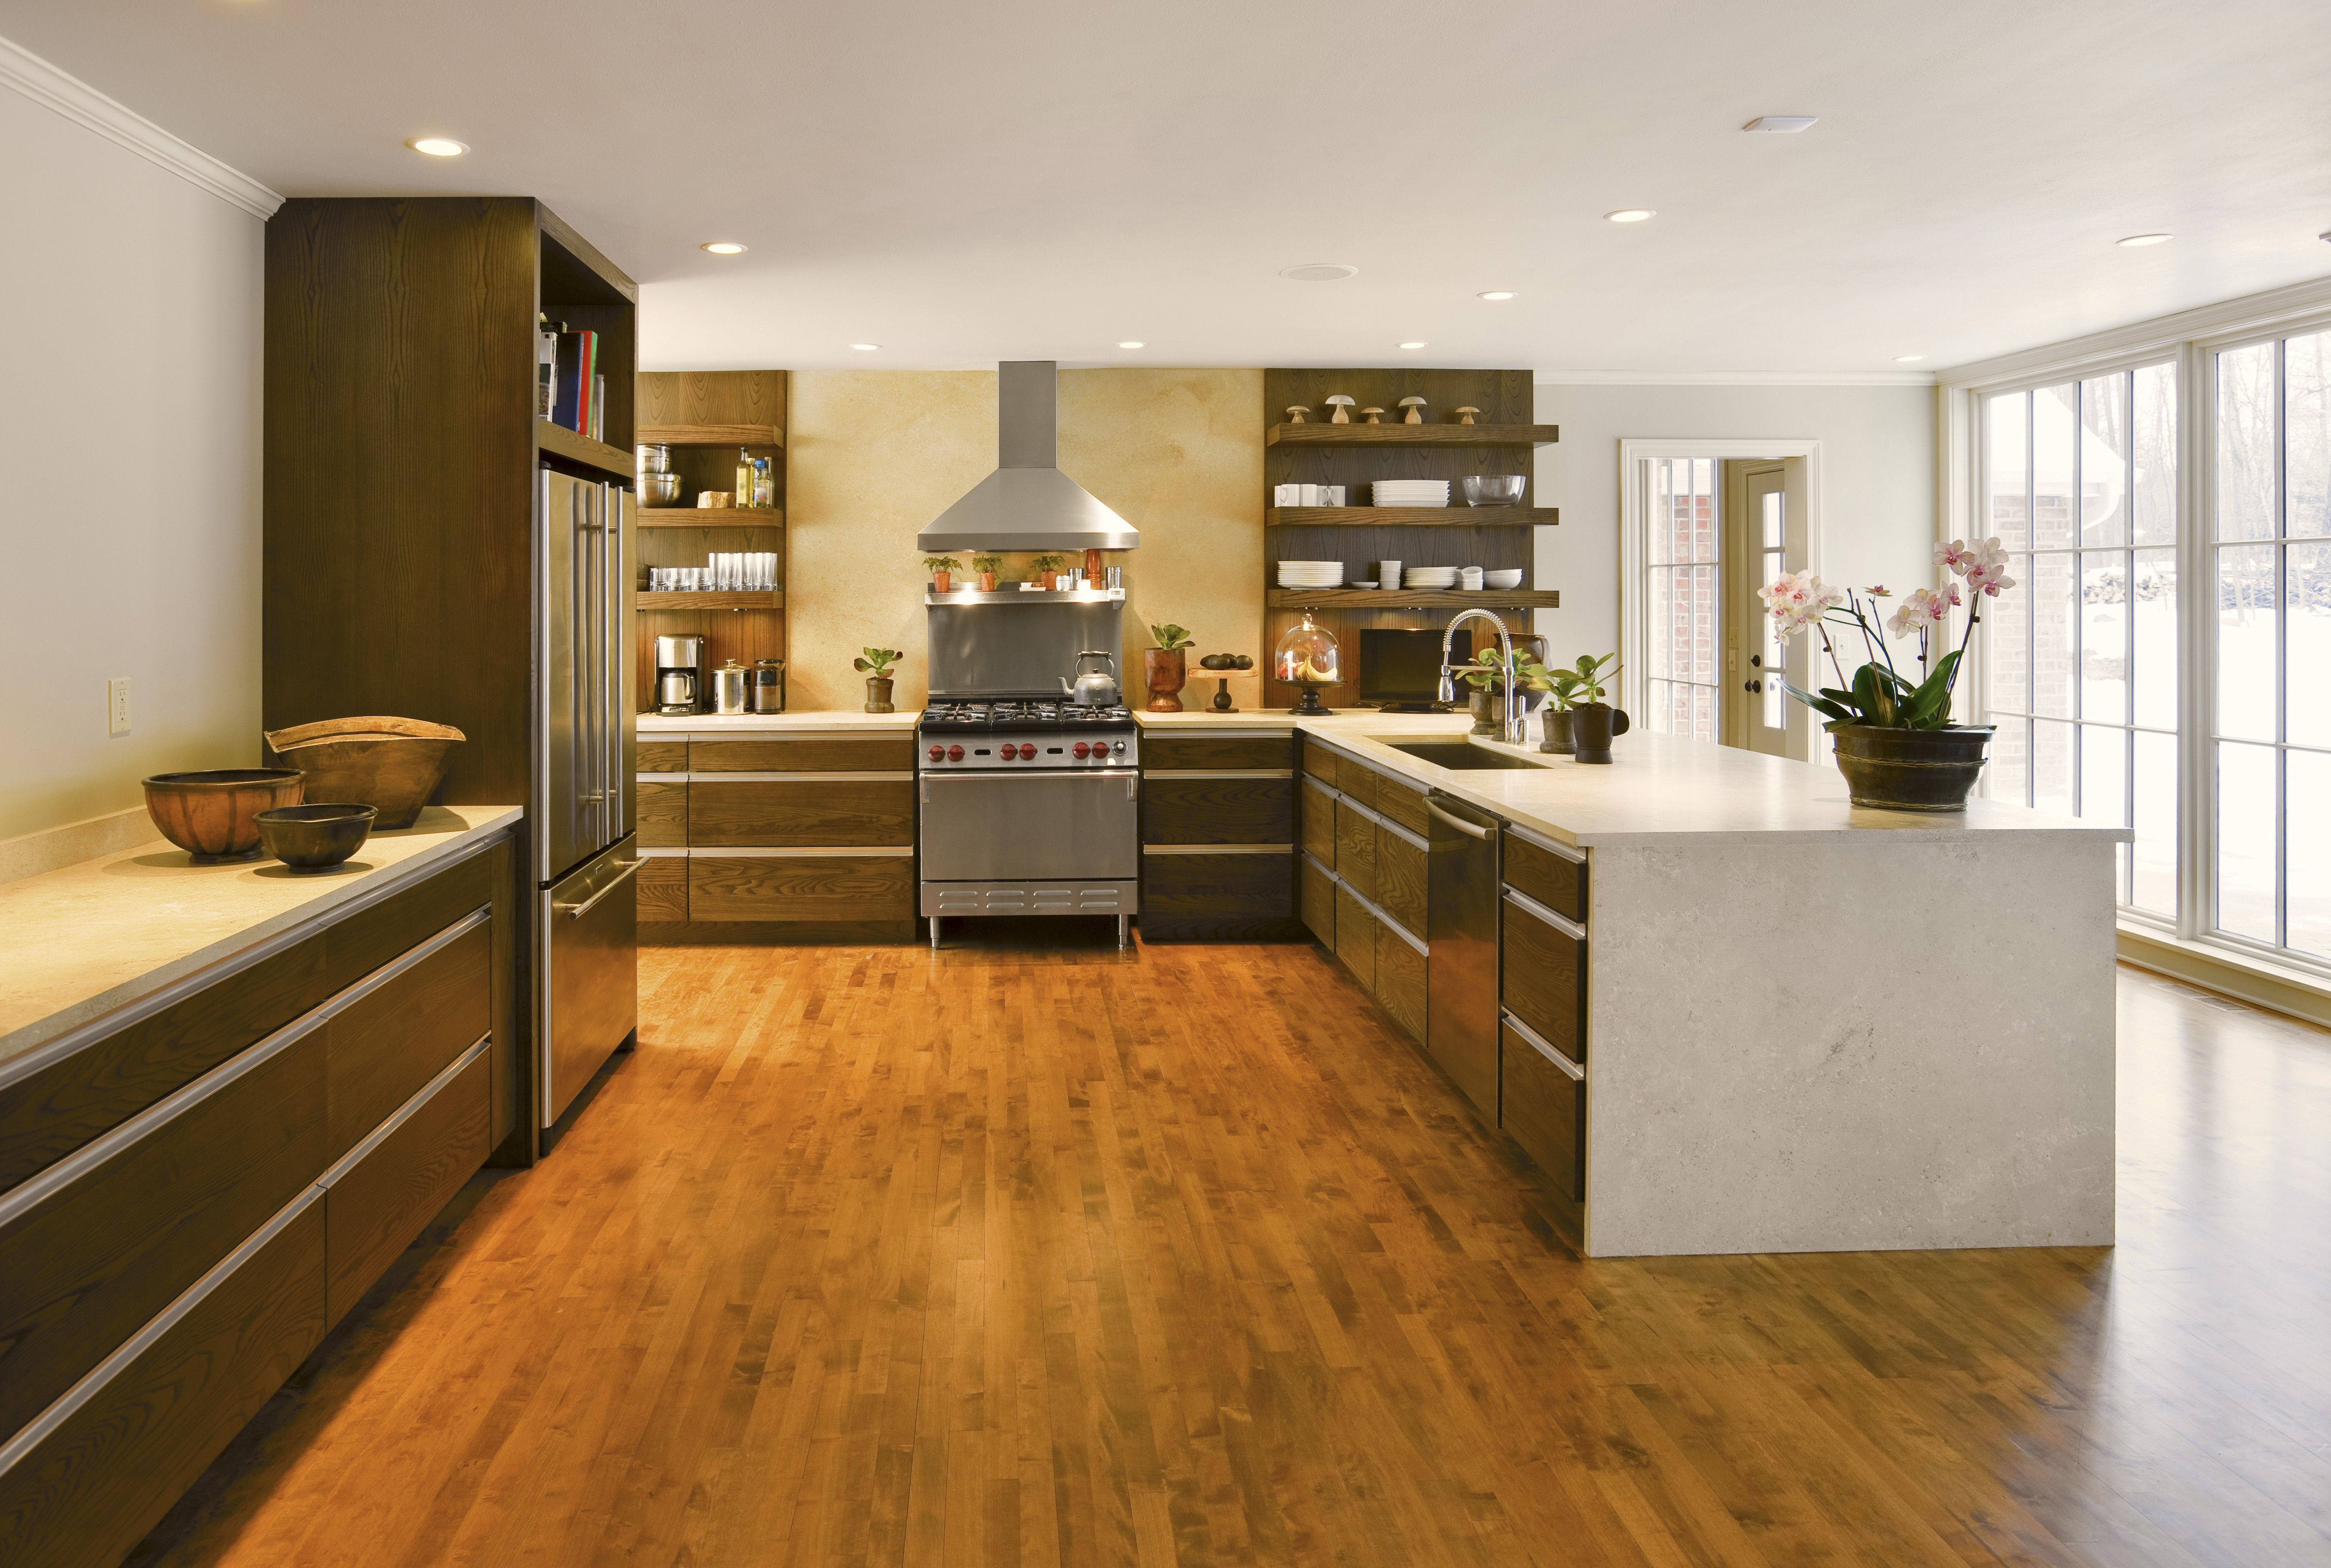 Best Hardwood Flooring for Contemporary Homes Of the Best Flooring Options for Senior Citizens within Modern Kitchen 88801369 59fd2f77b39d0300191aa03c